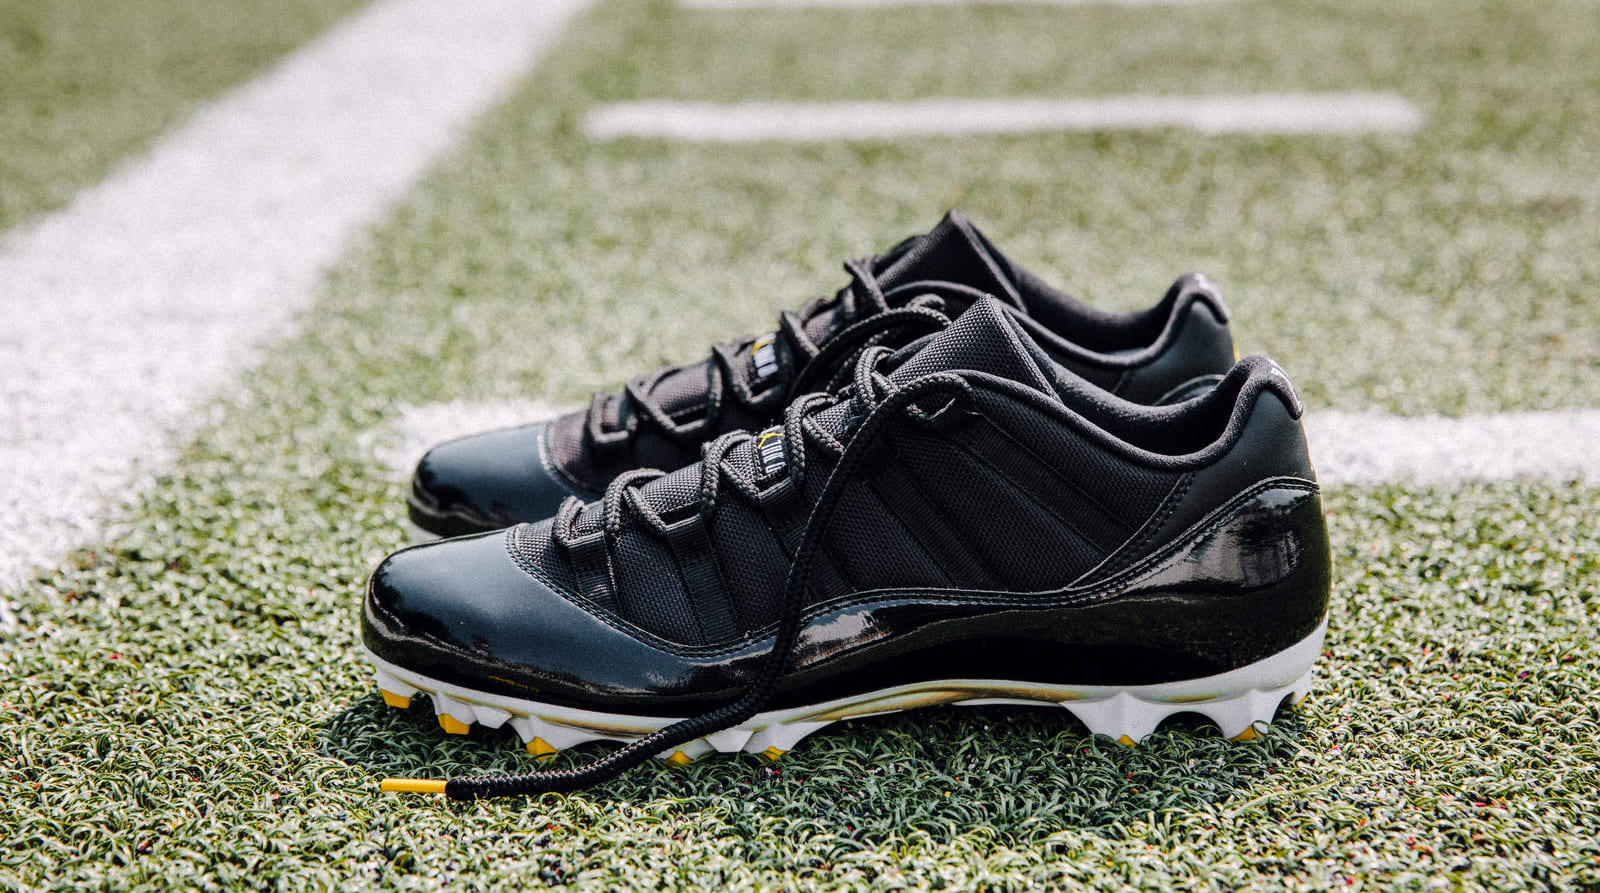 Air Jordan 11 Cleats Le'Veon Bell PE (Home)